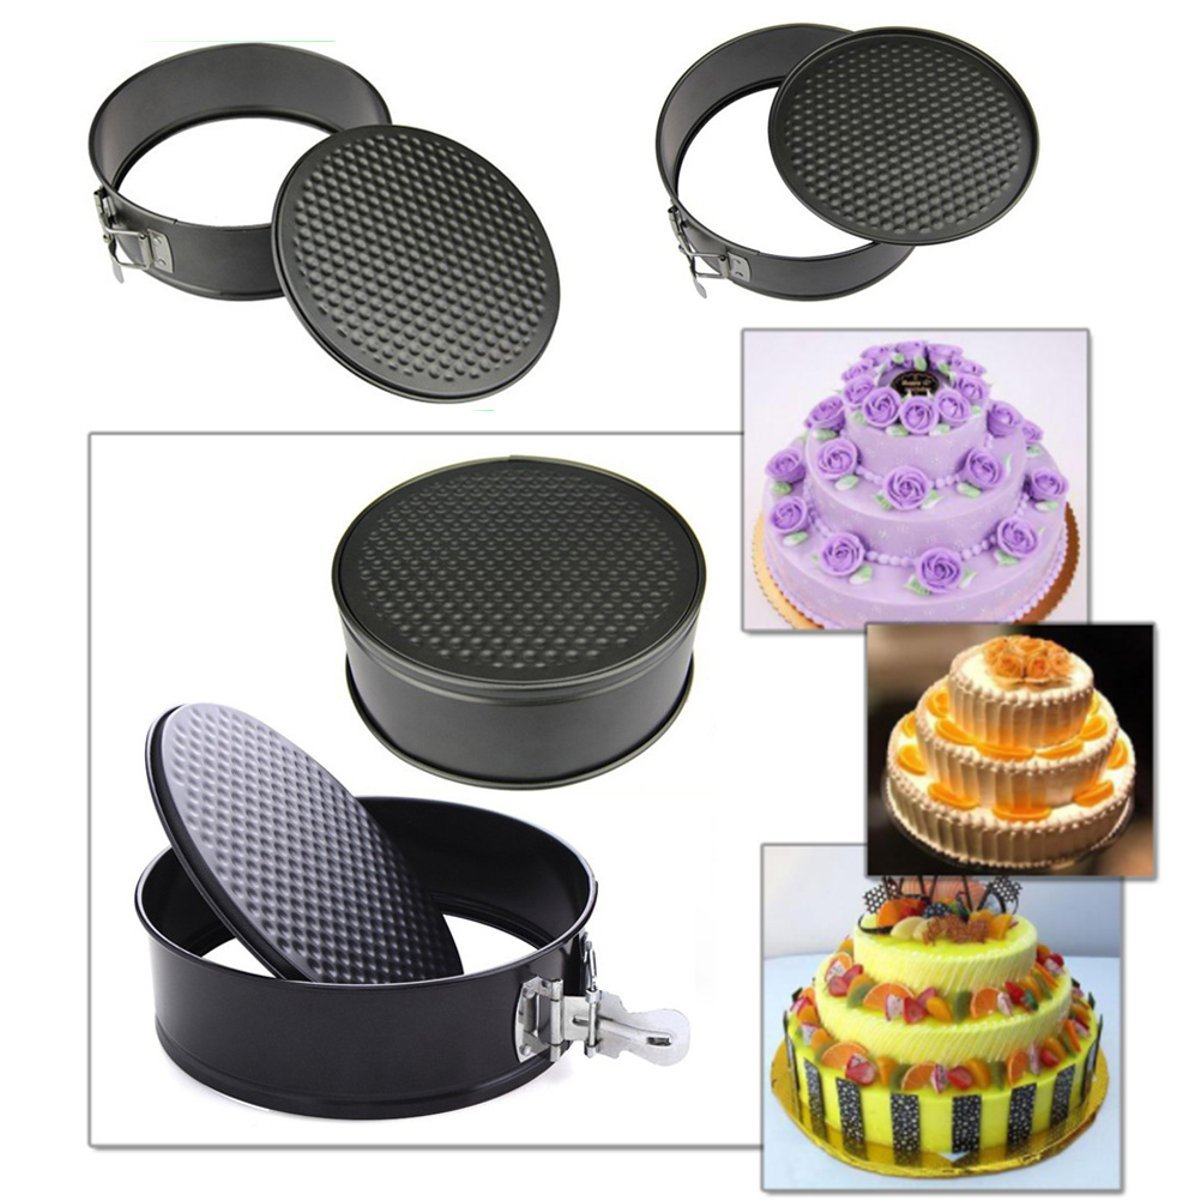 Tacoli- 22cm Metal Round Shape Pan Cake Mold Baking Molds Non-stick Cake Buckle Mould Cake Decorating Tools Kitchen Gadgets